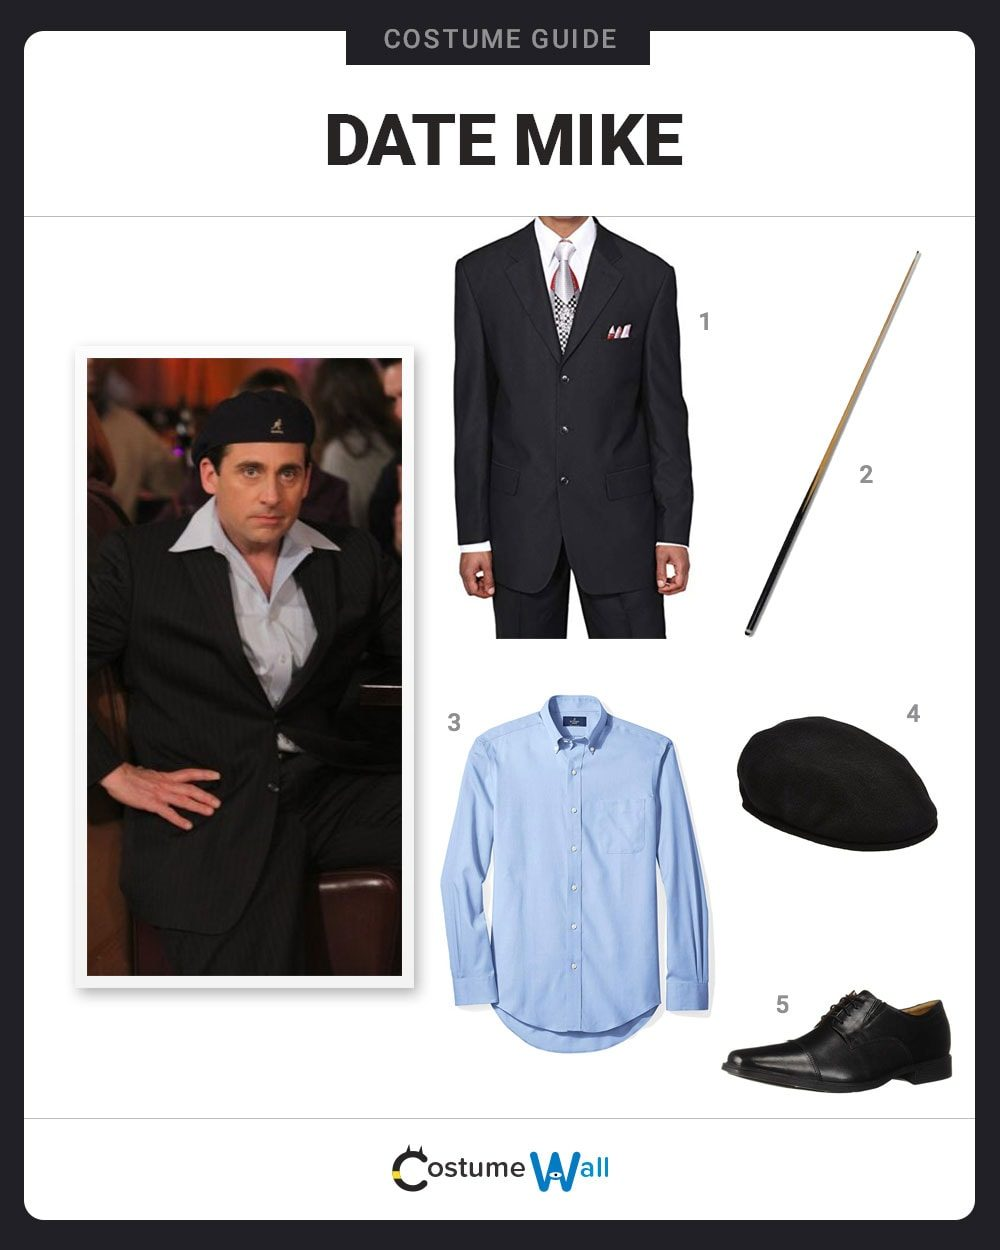 Date Mike Costume Guide